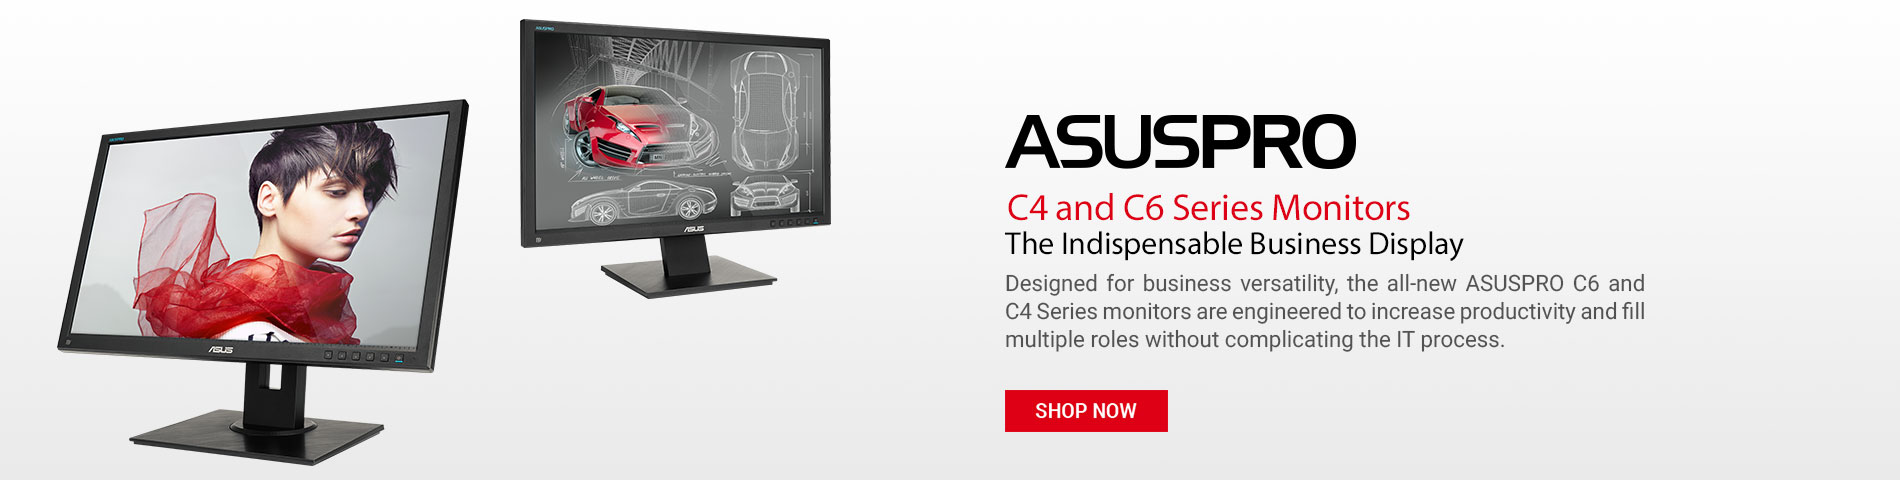 ASUSPRO C4 and C6 Monitors